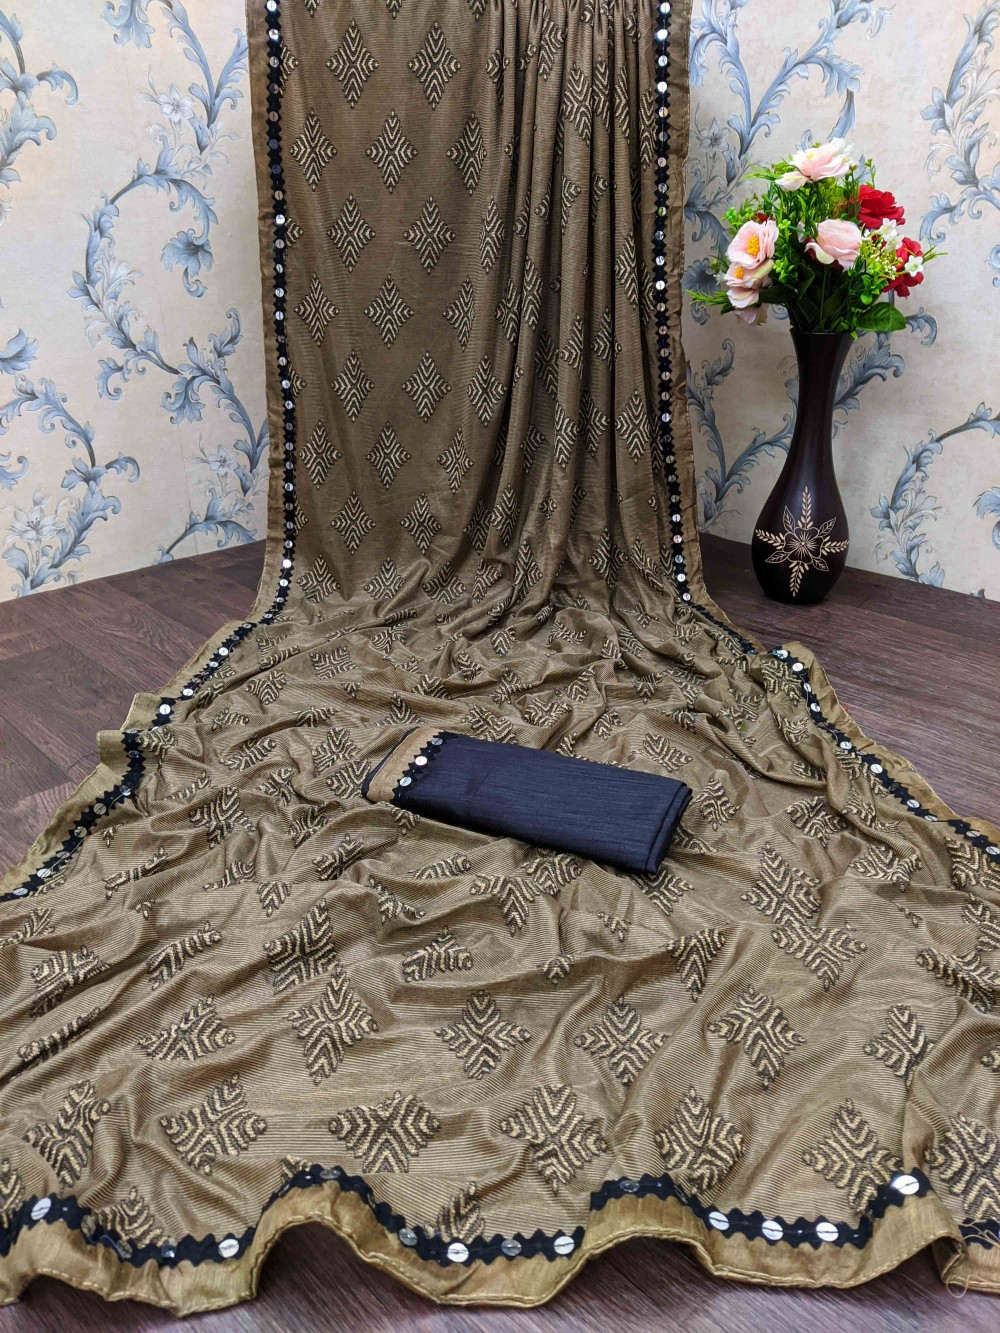 Trendy Store Women s soft knitted sari with jacquard geometric pattern and designer lace with contrast black blouse